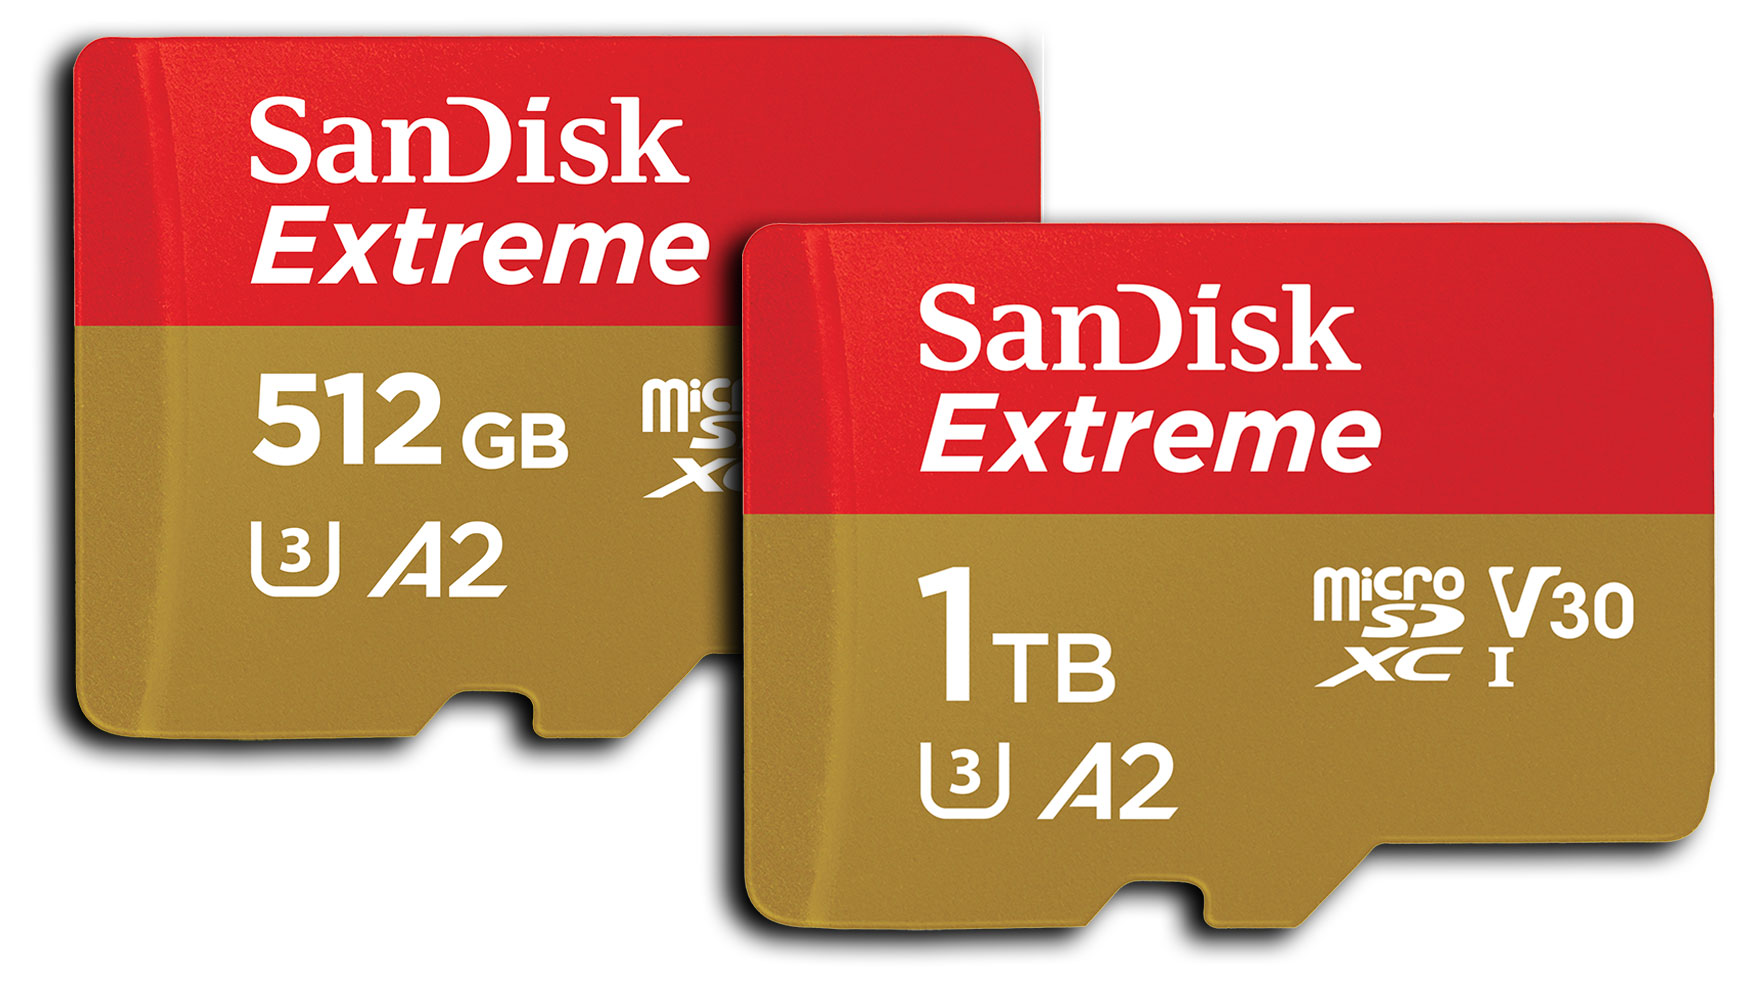 The SanDisk Extreme 1TB is the world's fastest UHS-I microSDXC memory card